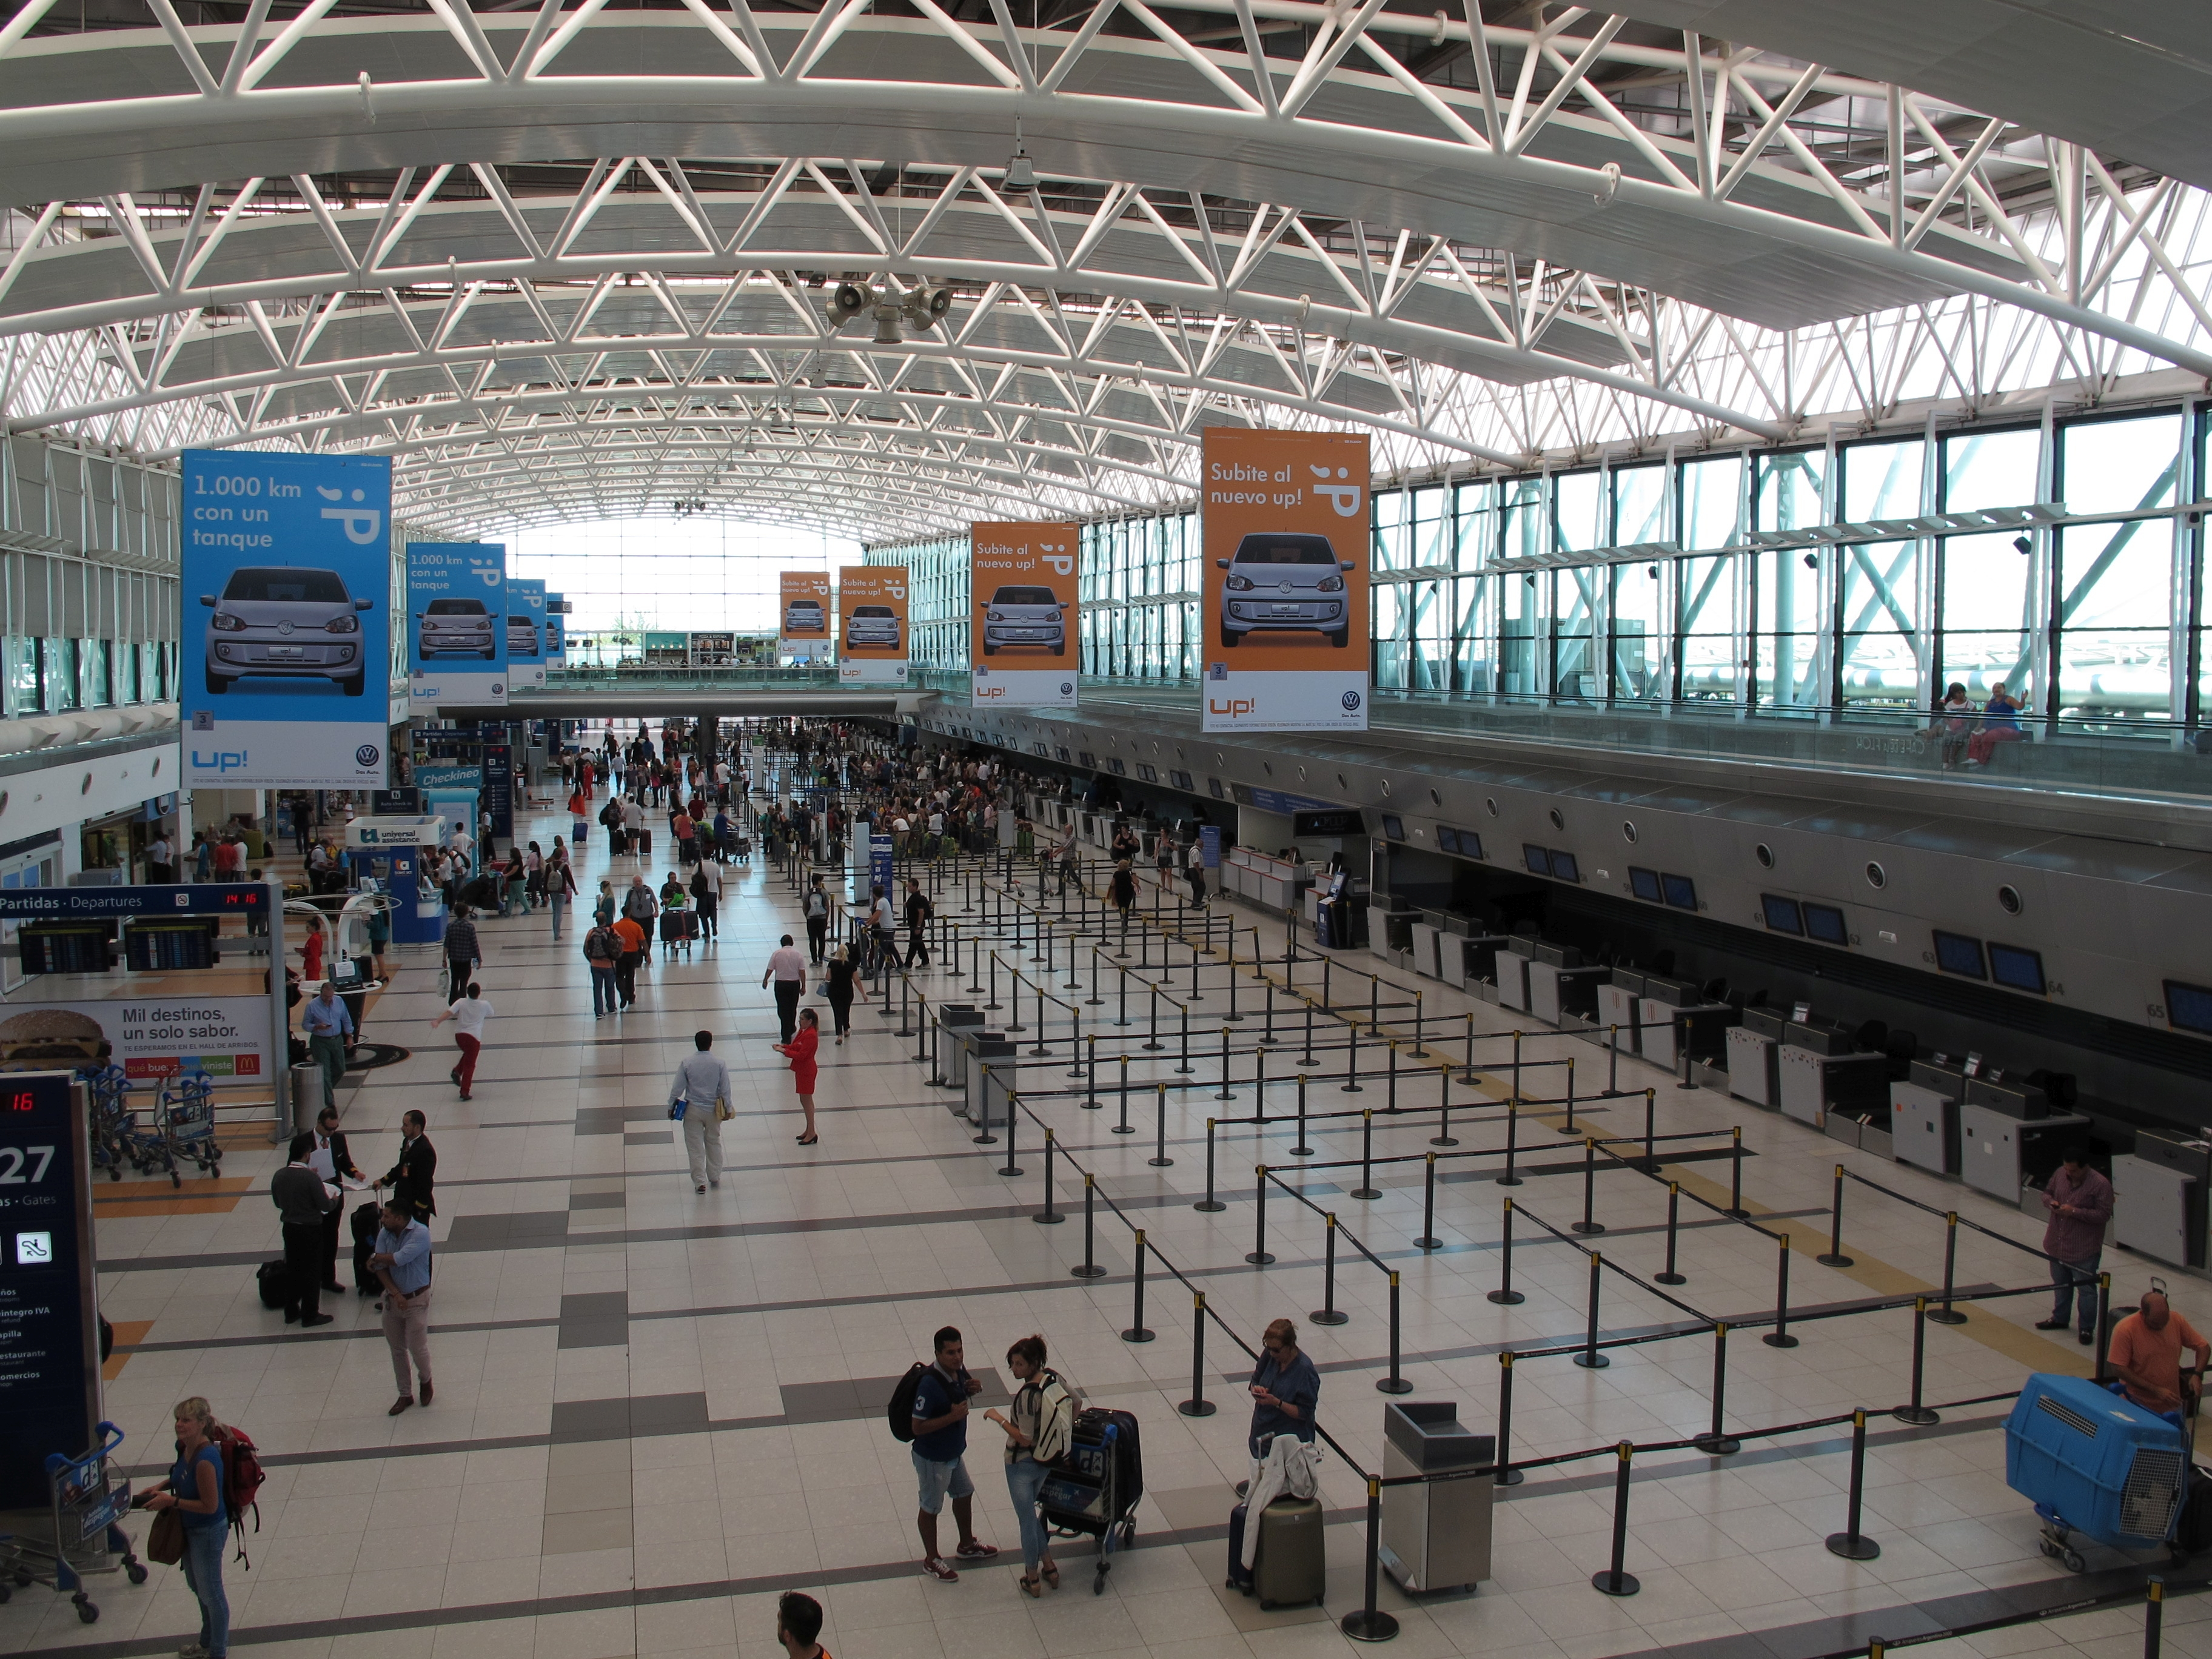 Aeroporto Eze : Happiness for holidays at ezeiza eze airport buenos airu flickr